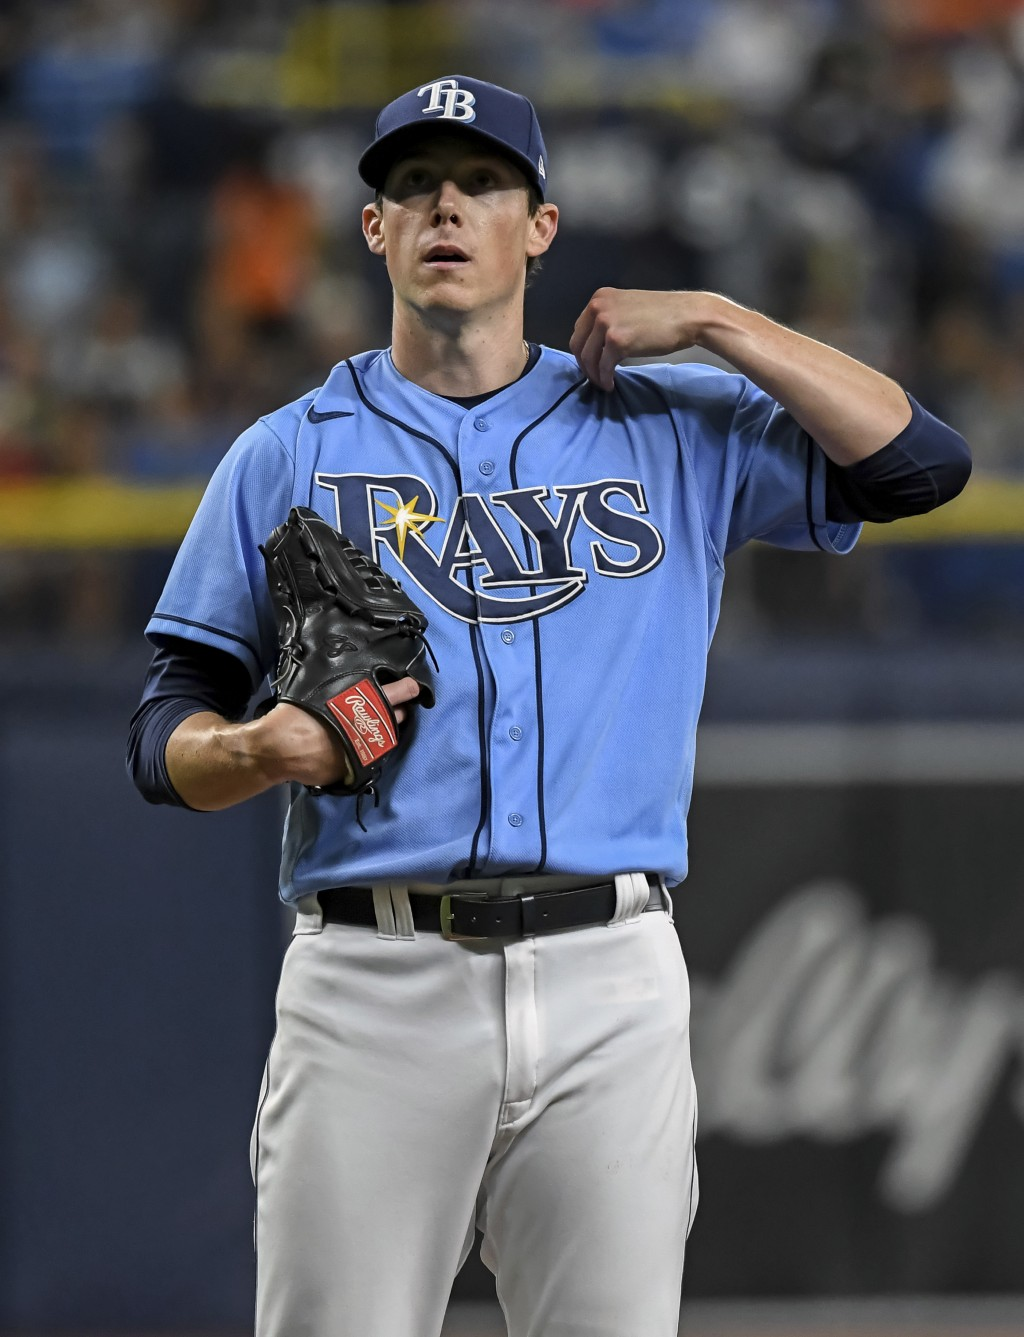 Tampa Bay Rays starter Ryan Yarbrough adjusts his jersey between pitches during the first inning of a baseball game against the Baltimore Orioles, Mon...